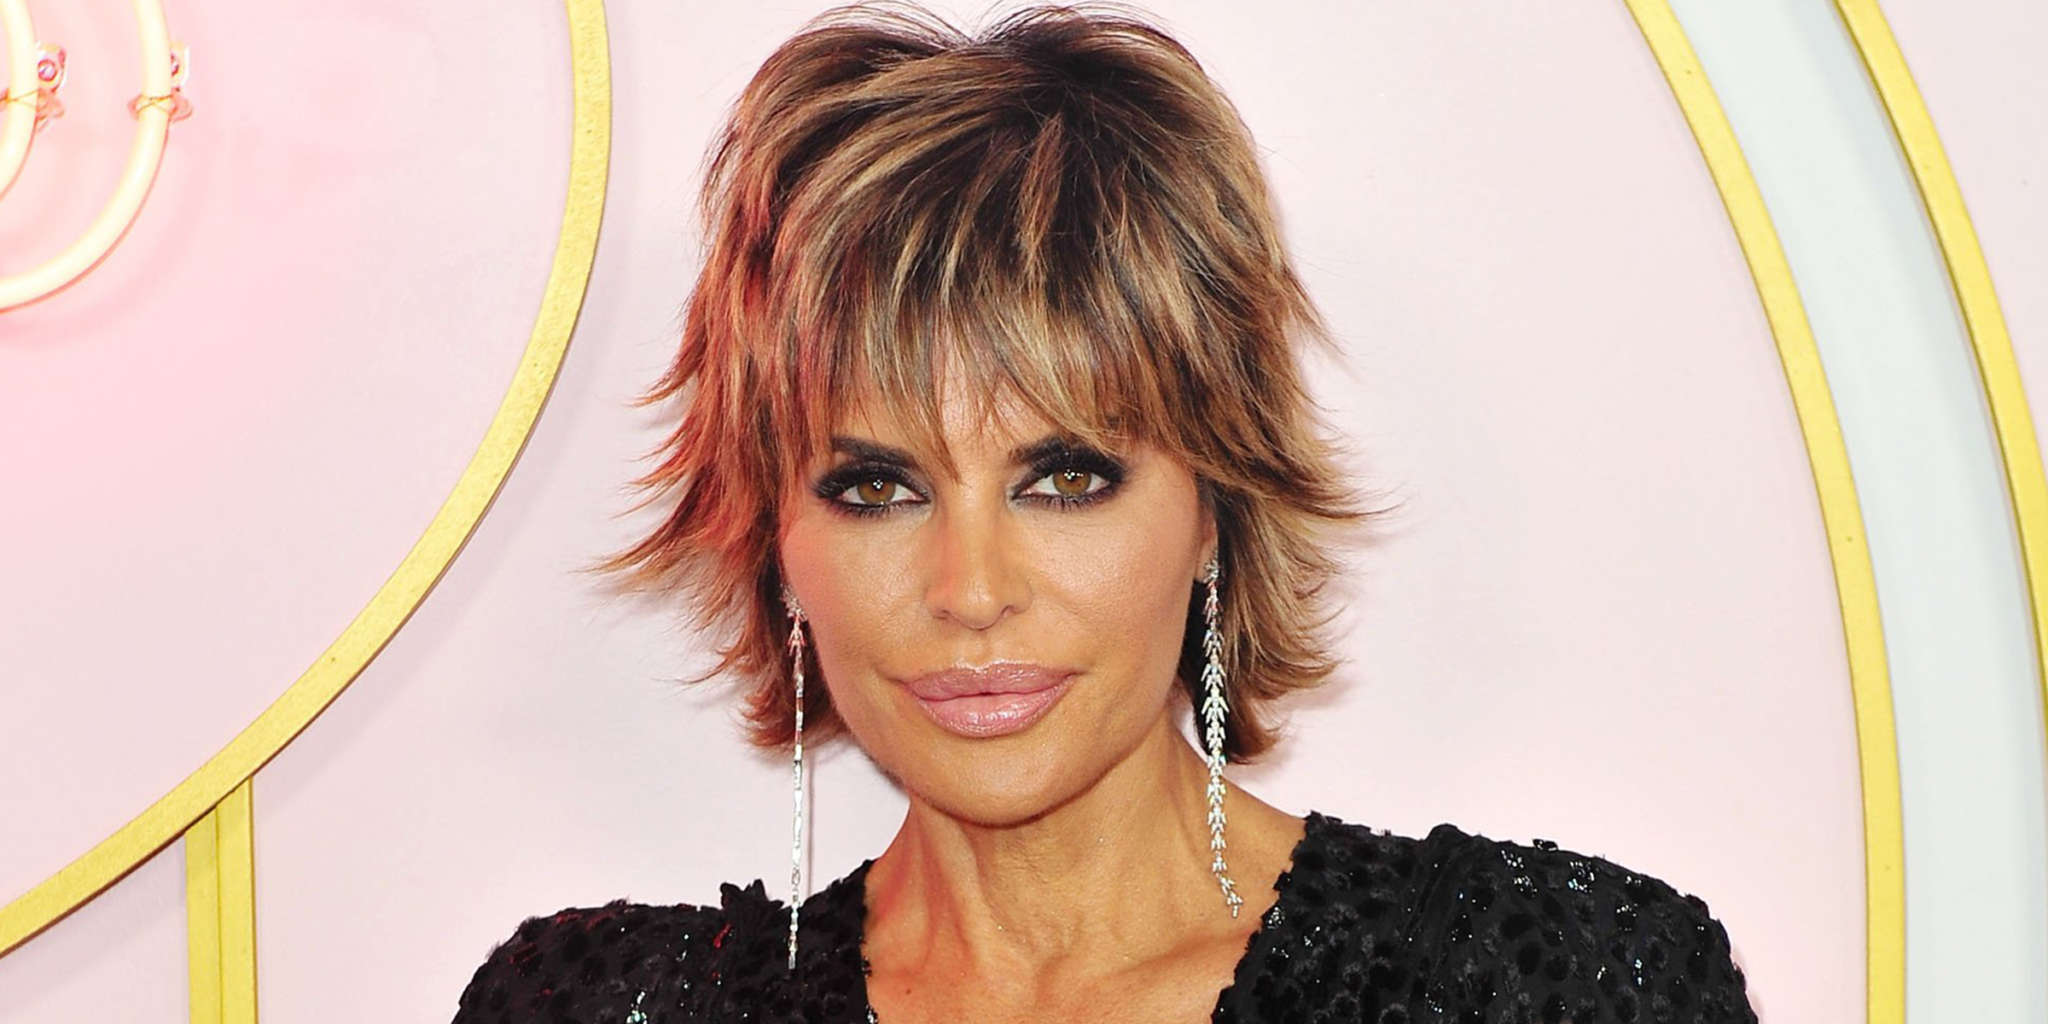 """""""lisa-rinna-seems-to-shade-denise-richards-with-new-pics-from-rome-cast-trip-after-brandi-glanville-posts-pic-of-them-kissing"""""""